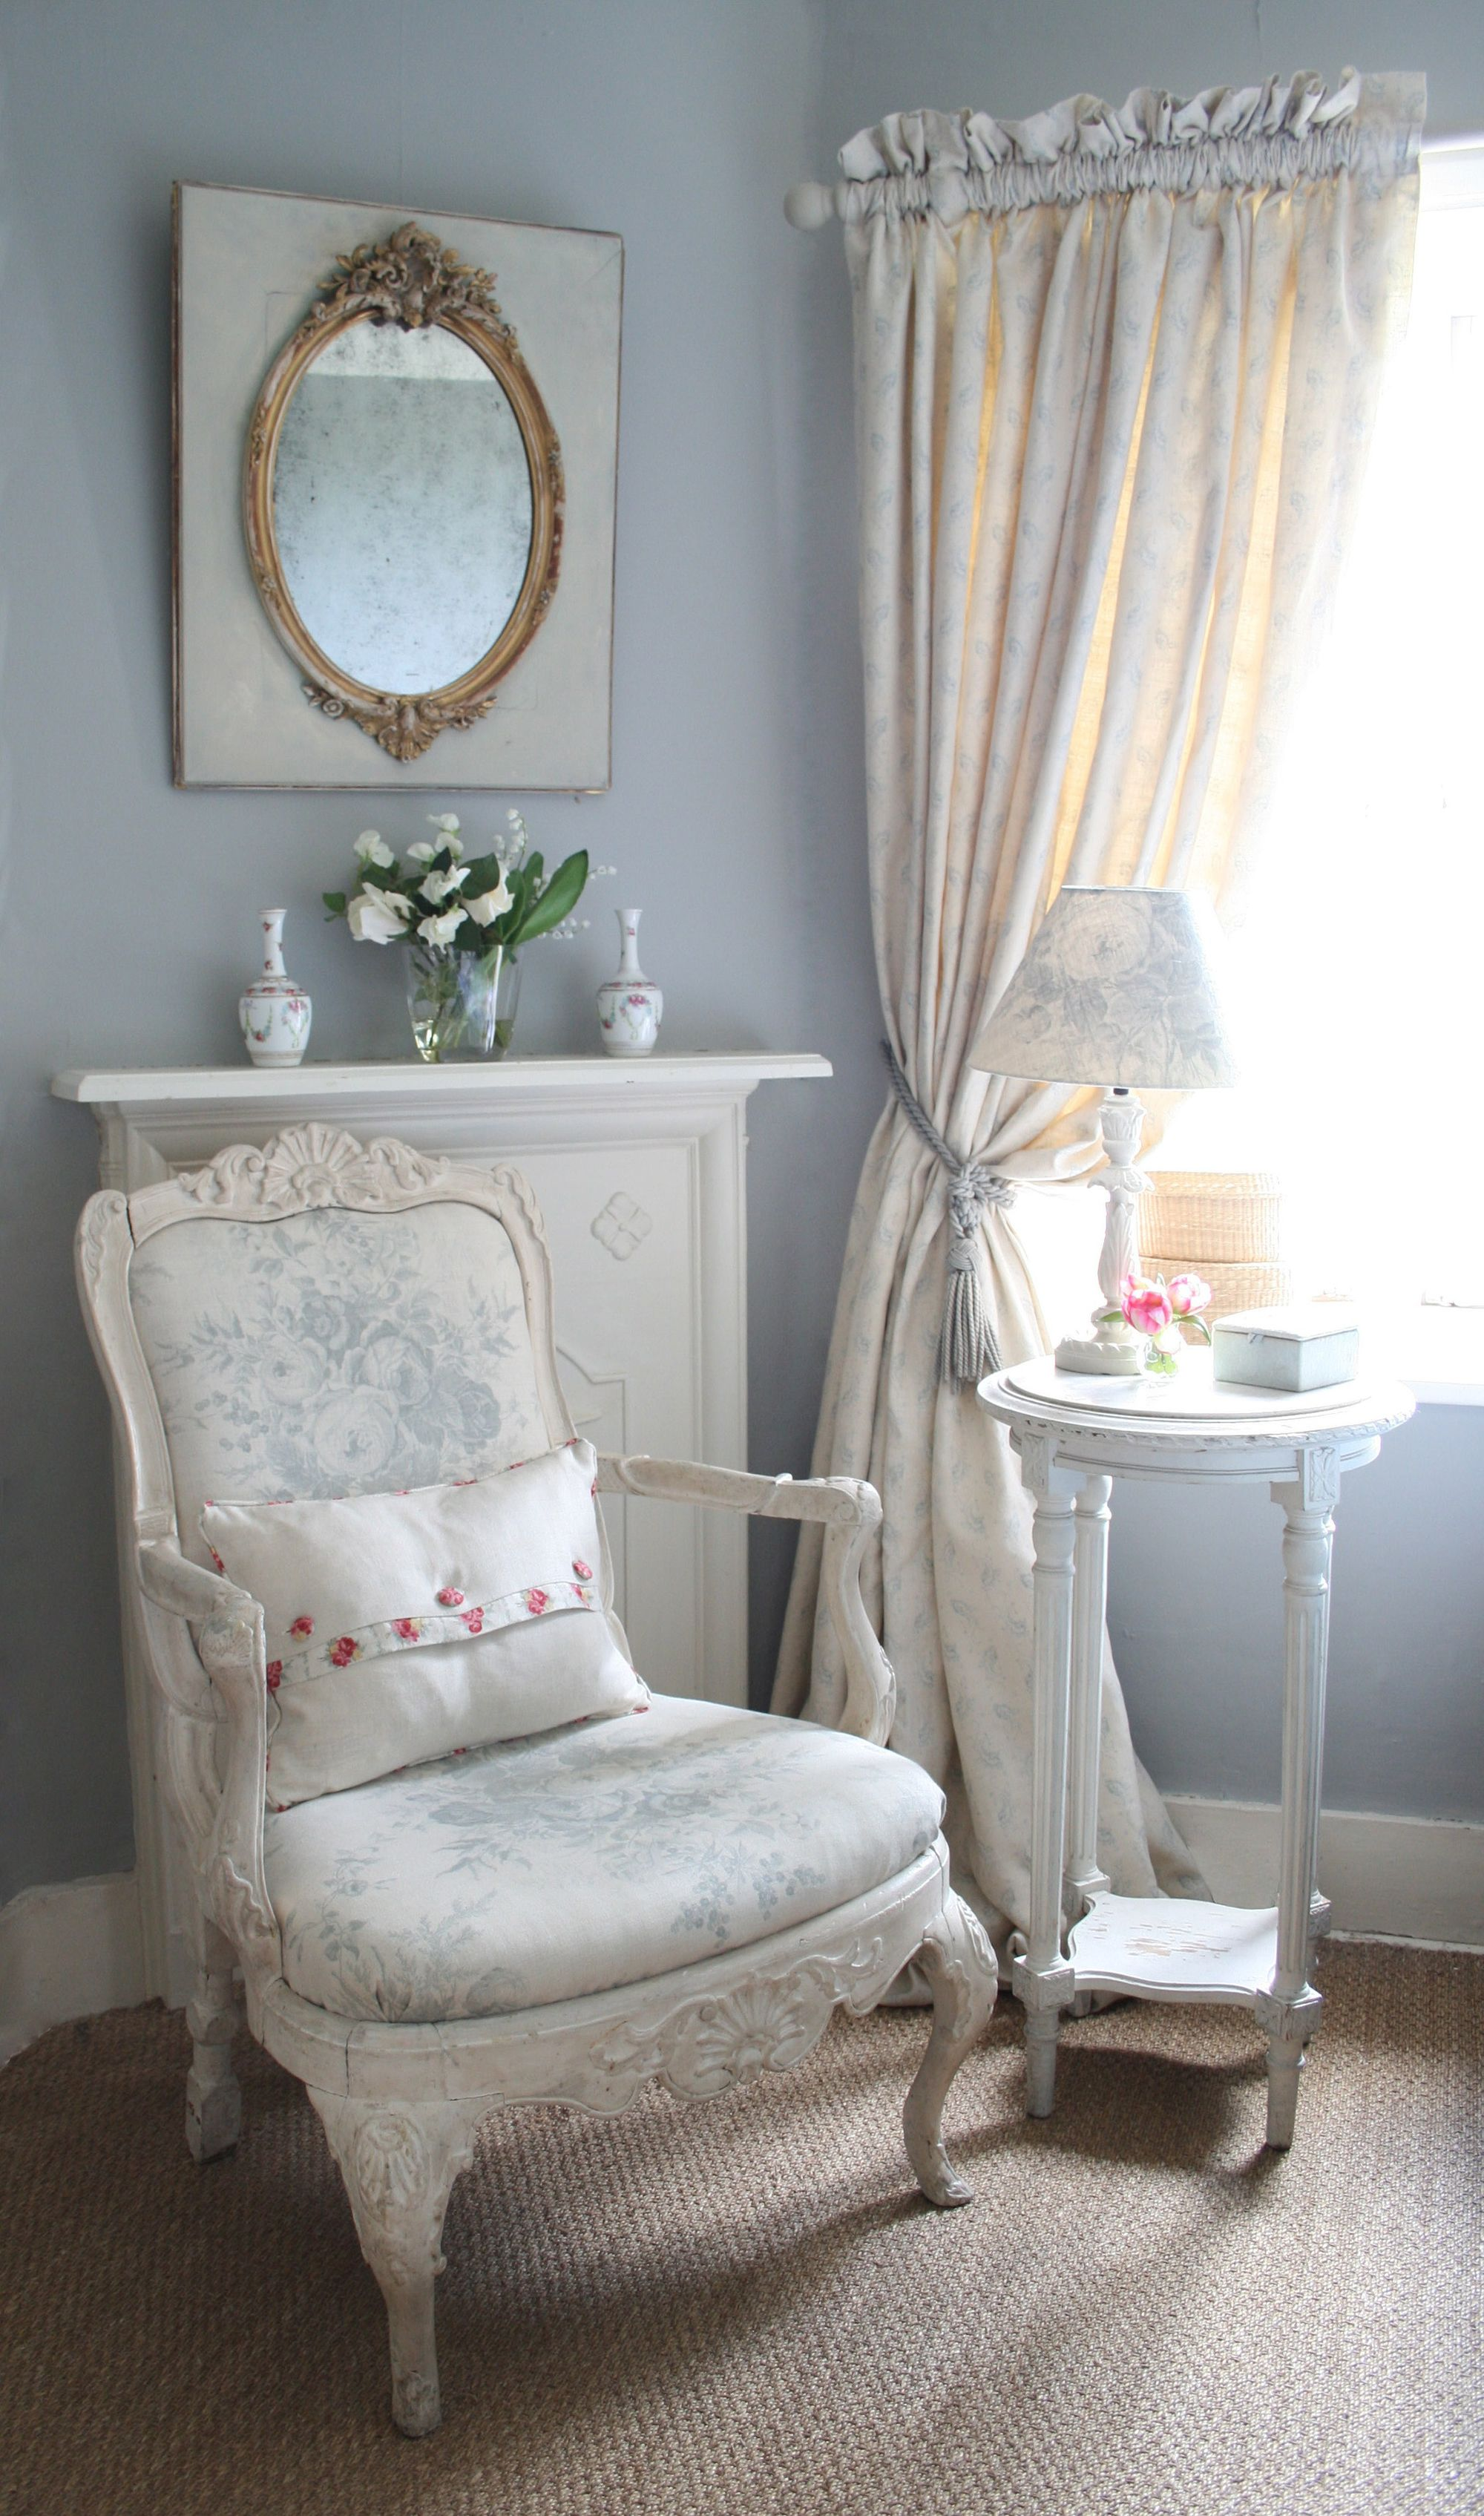 smokey blue grey with creamy chair in pretty floral for my Master